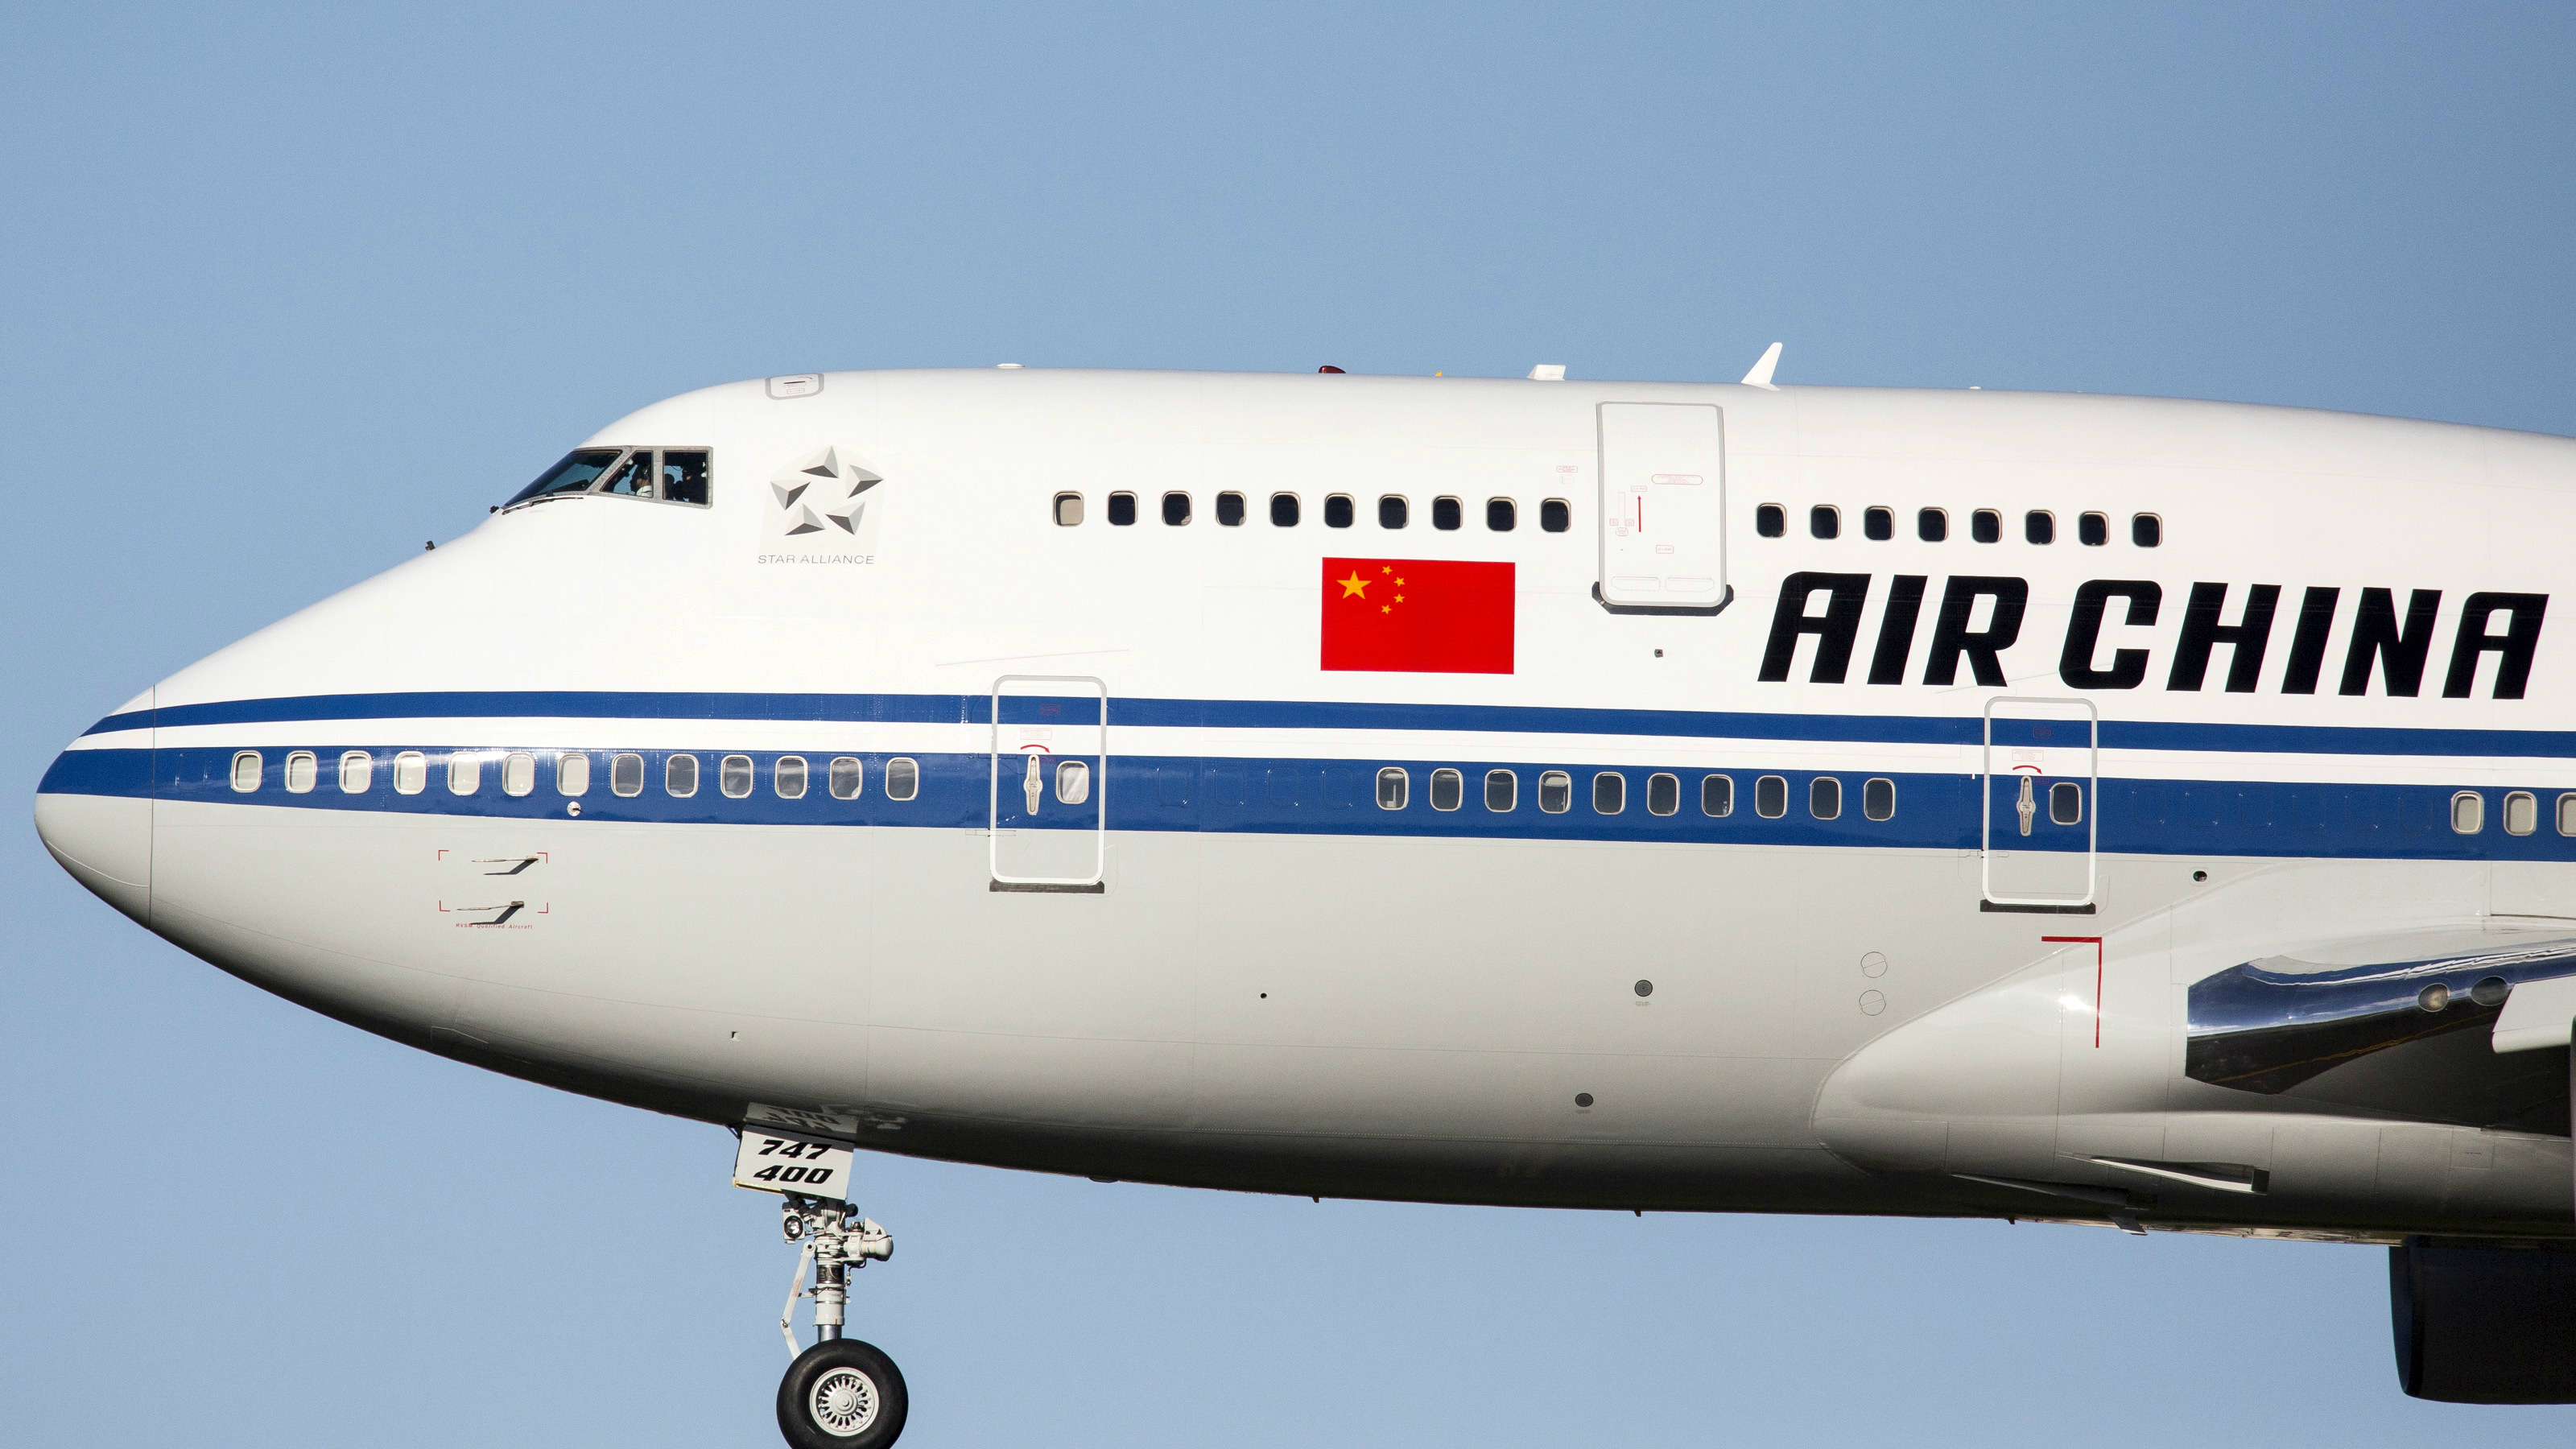 An Air China plane in the sky.